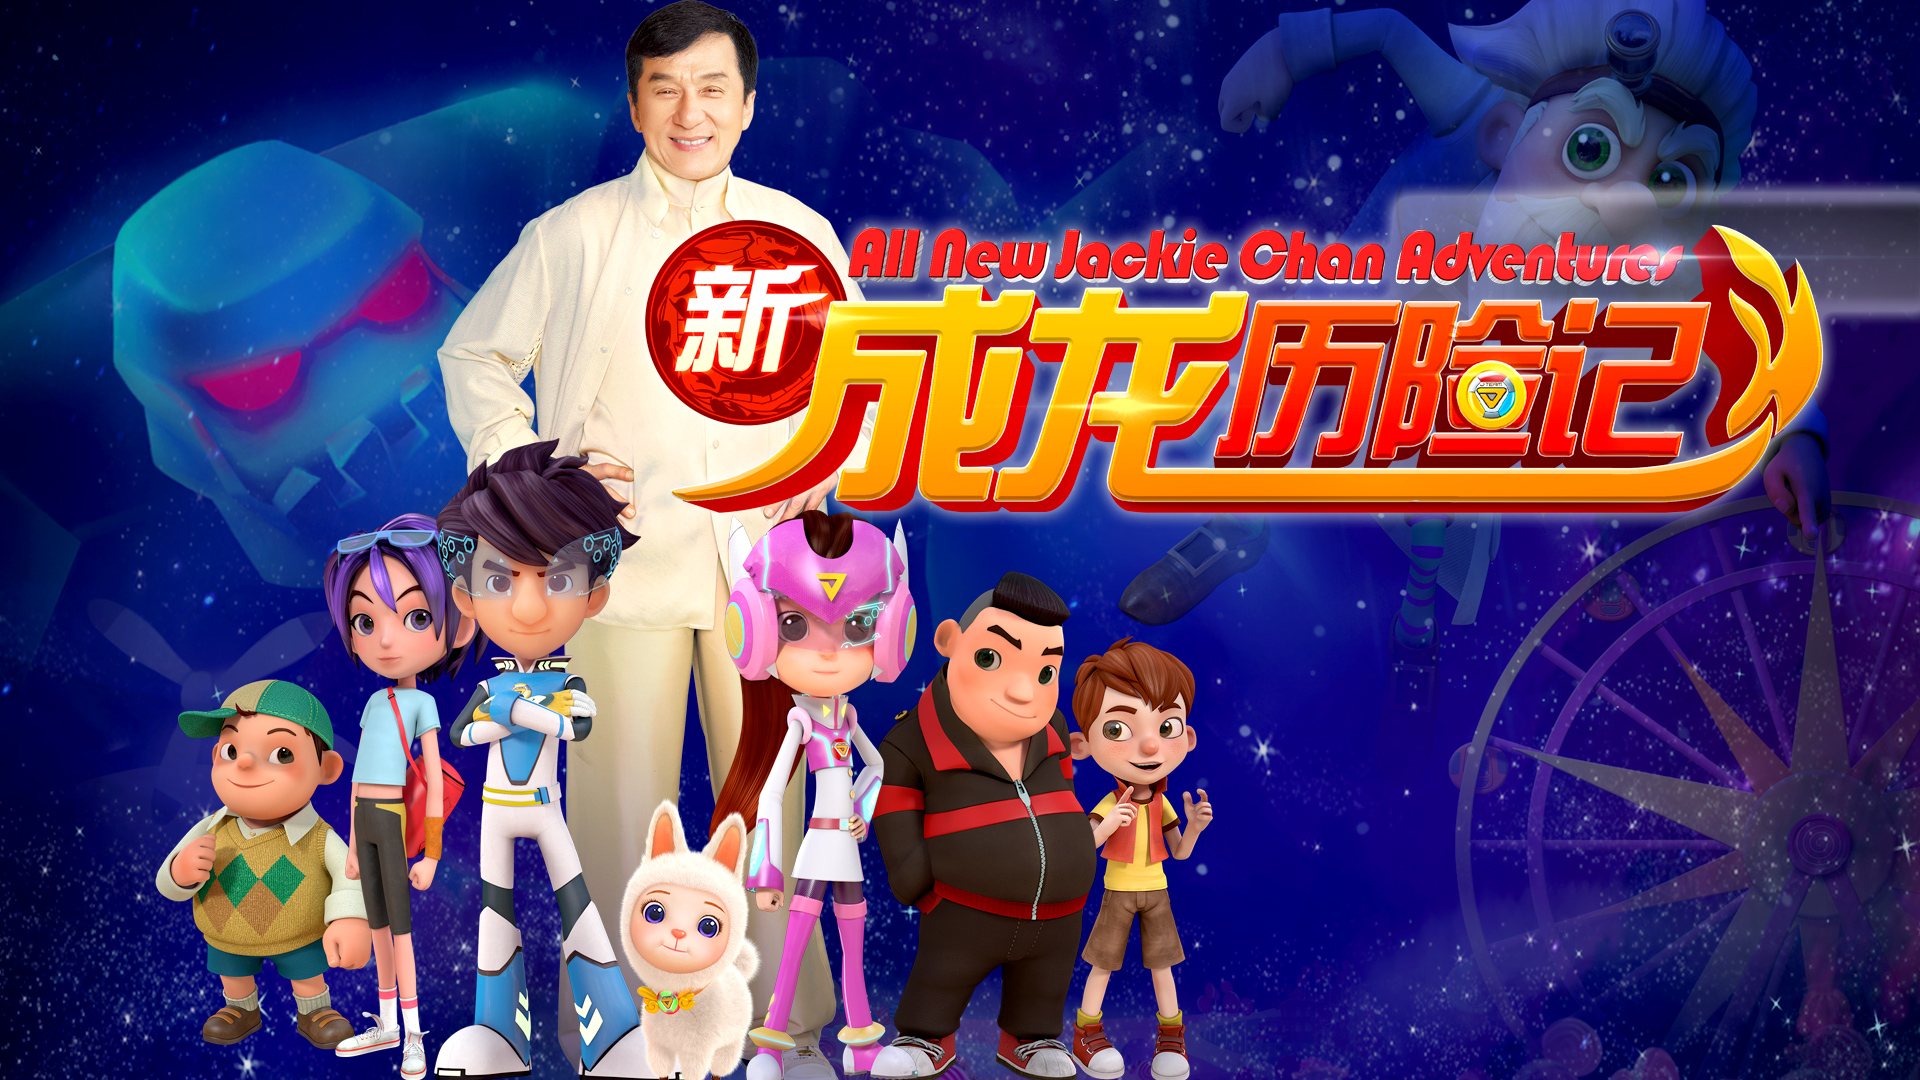 ALL NEW JACKIE CHAN'S ADVENTURES